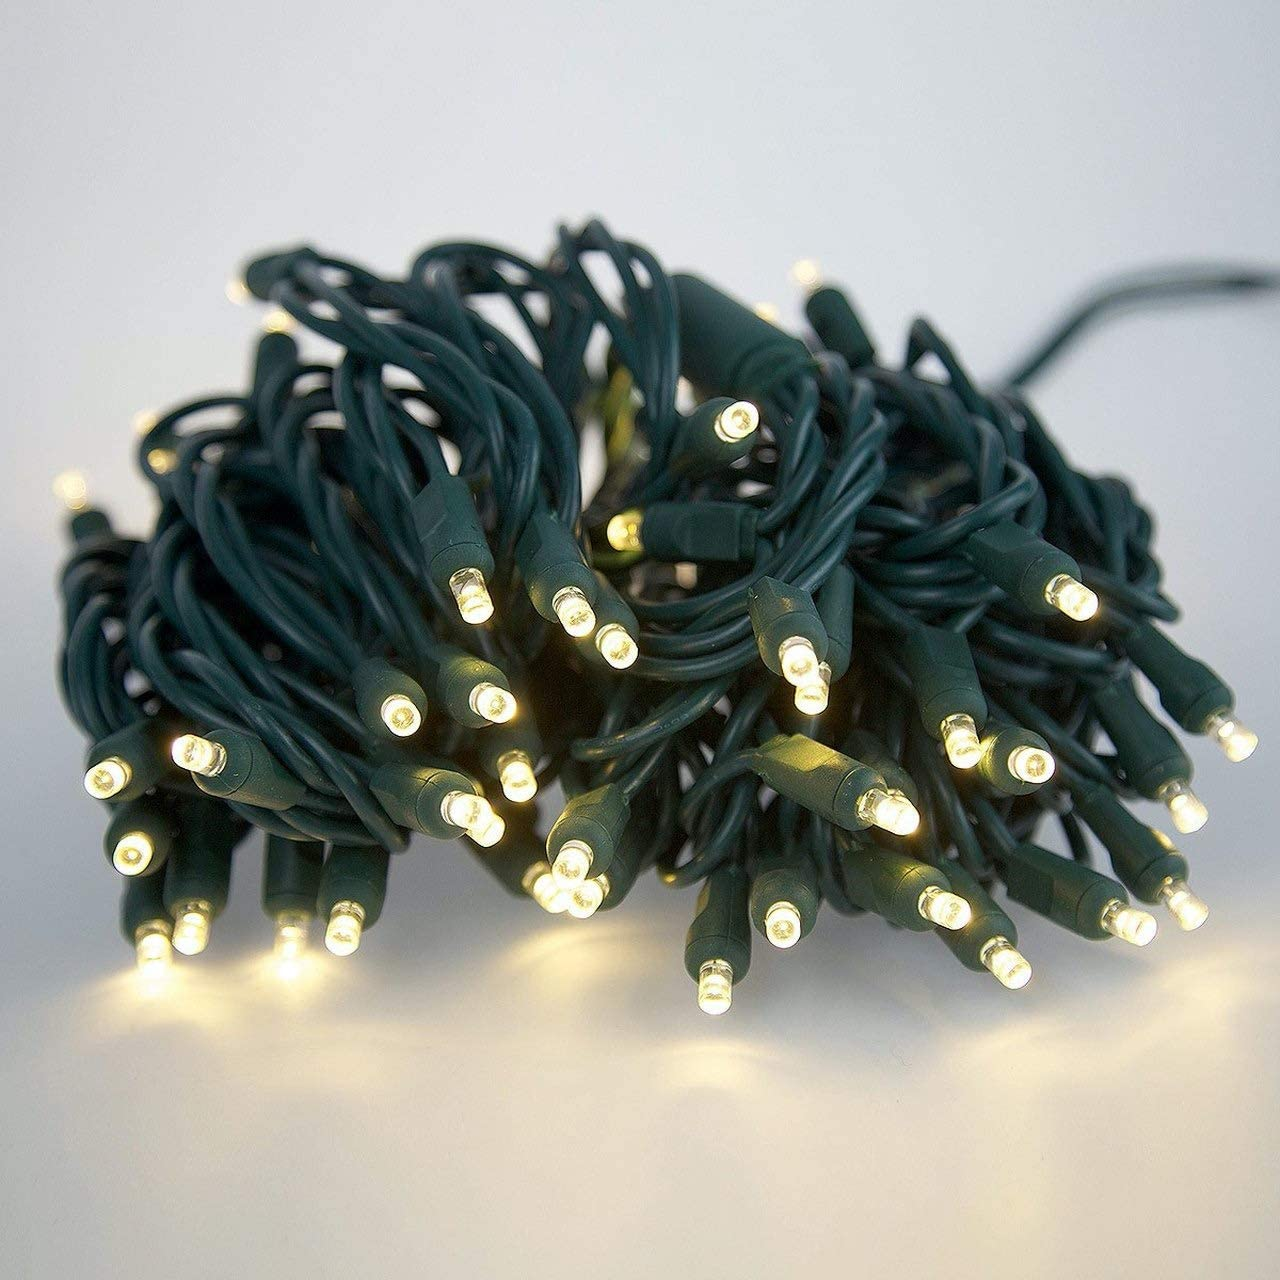 Christmas Twinkle Lights 20 of 100 Counts, for Outdoor Indoor, Commercial Grade, Warm White Light, Green Wire, 6in Spacing, 50ft, UL Listed